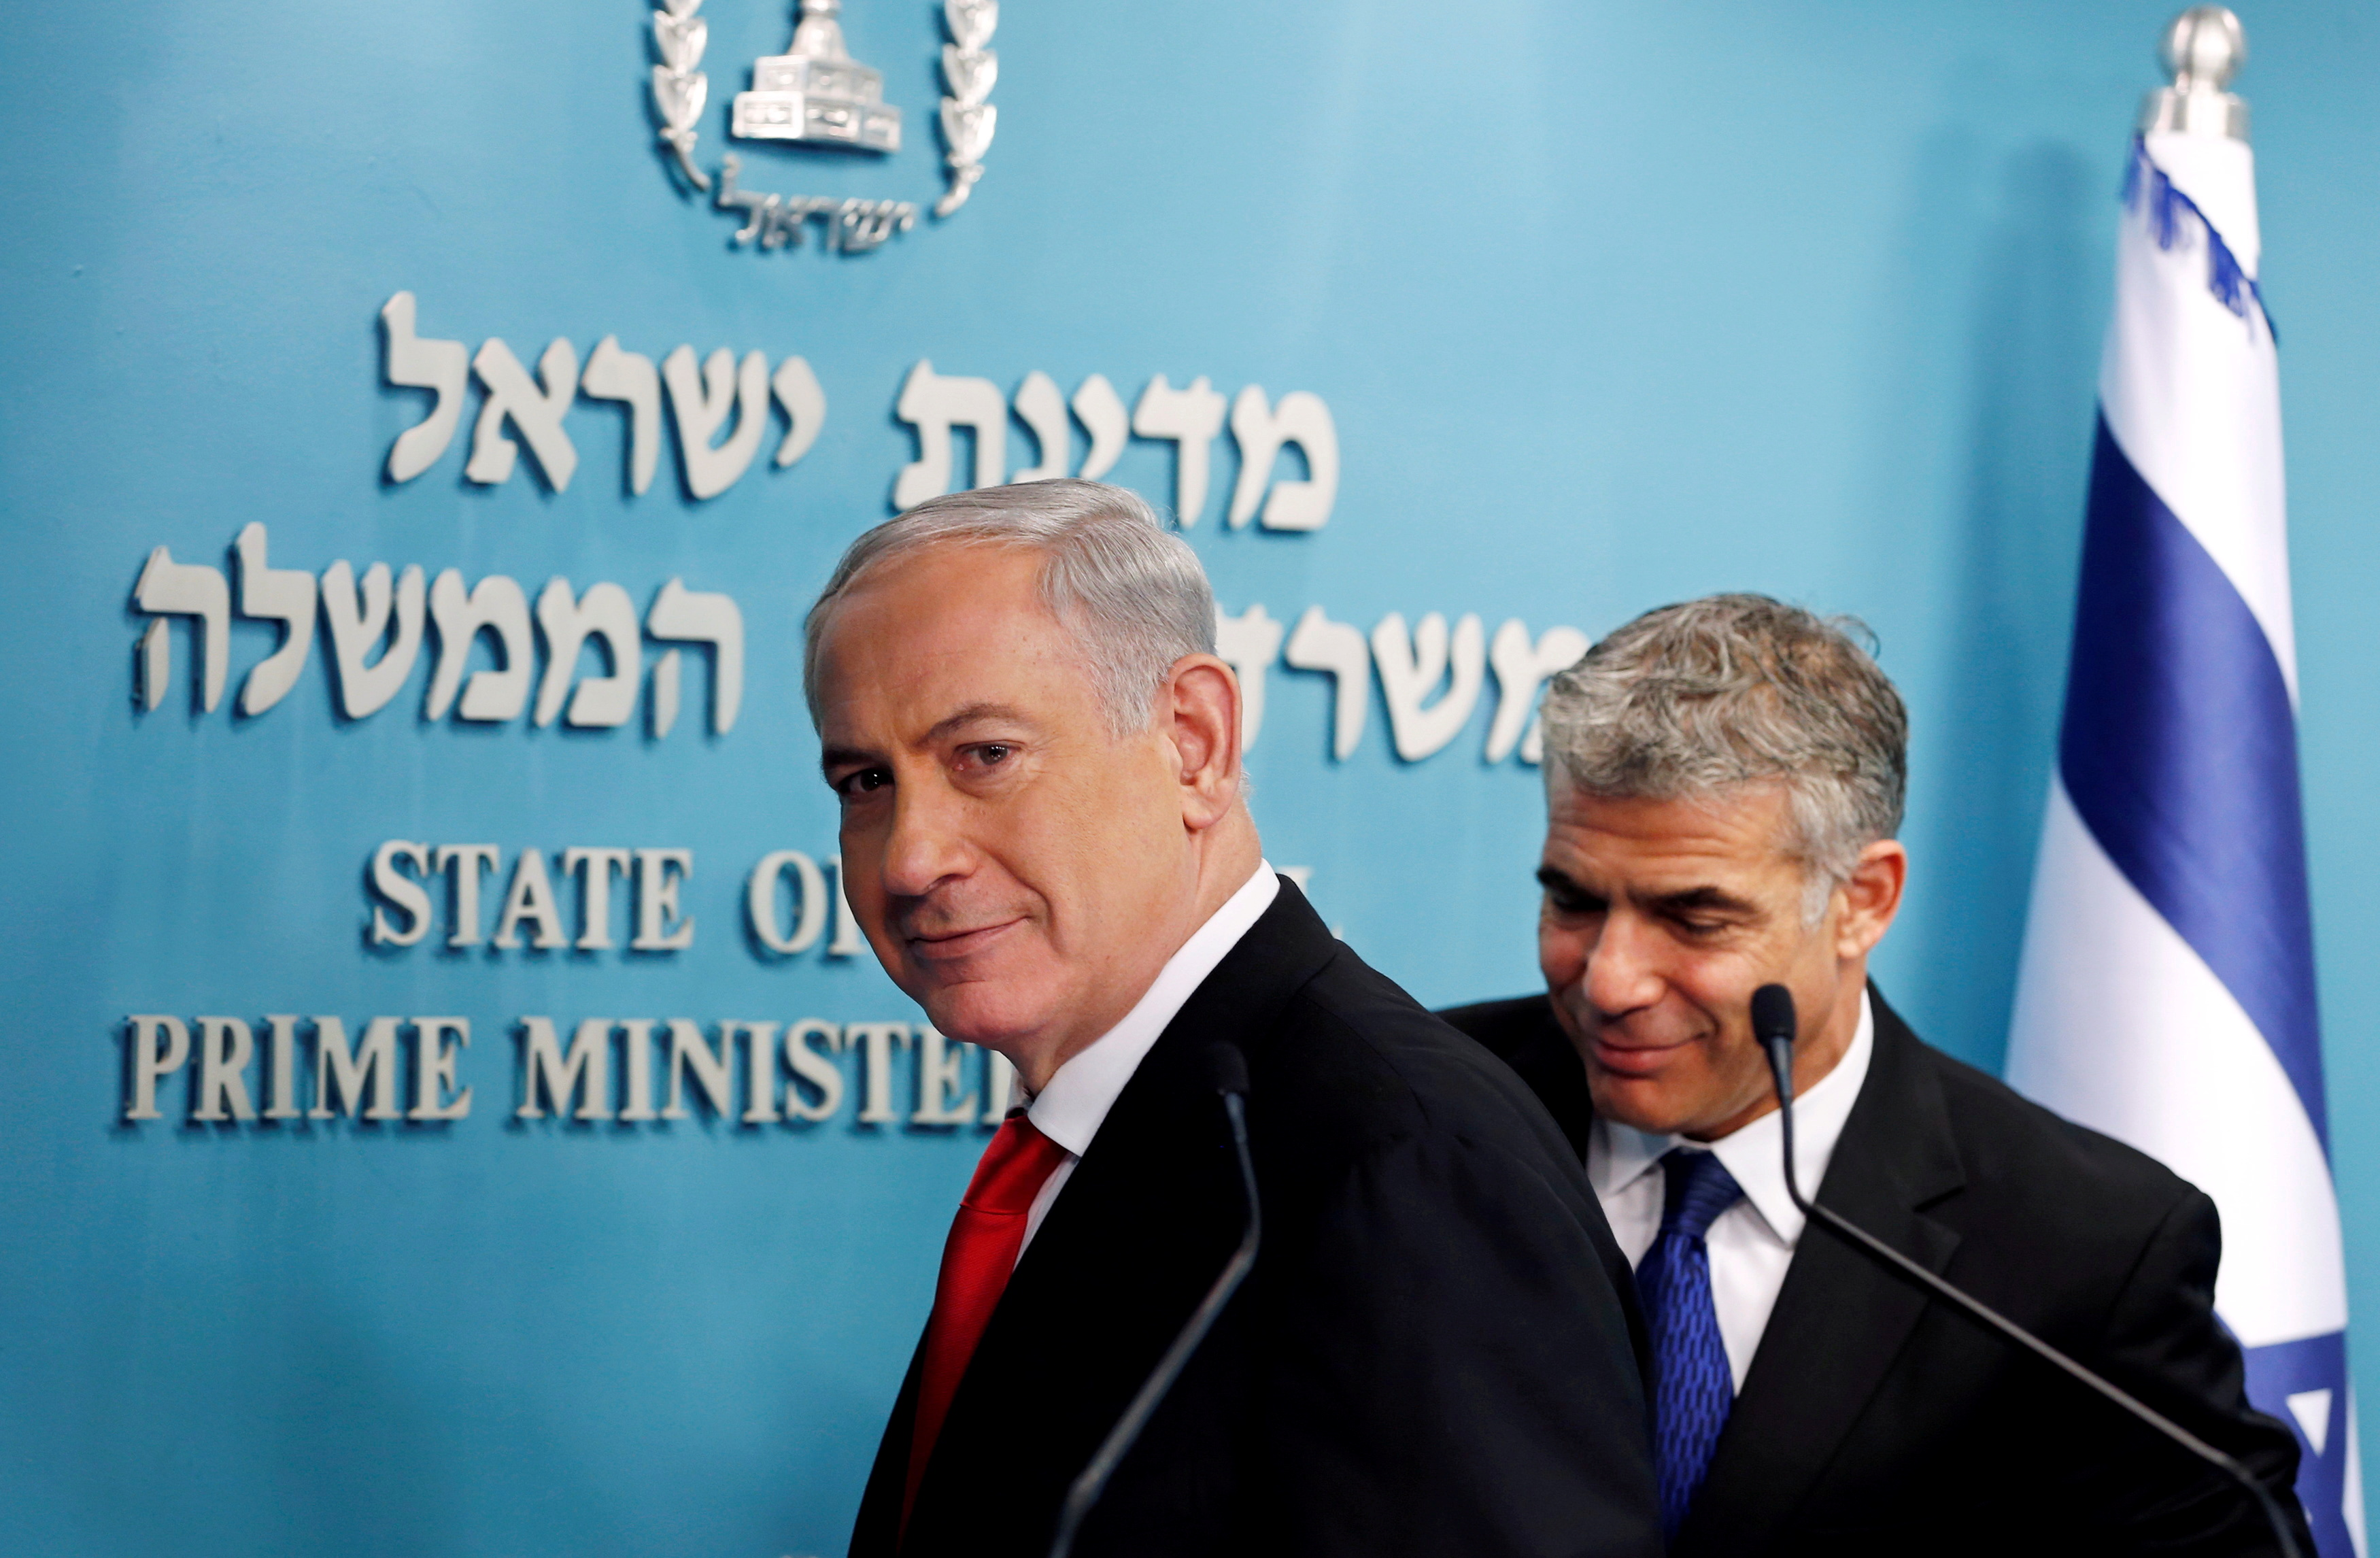 Israeli Prime Minister Benjamin Netanyahu (L) and Finance Minister Yair Lapid leave after a joint news conference in Jerusalem July 3, 2013. REUTERS/Ronen Zvulun/File Photo/File Photo